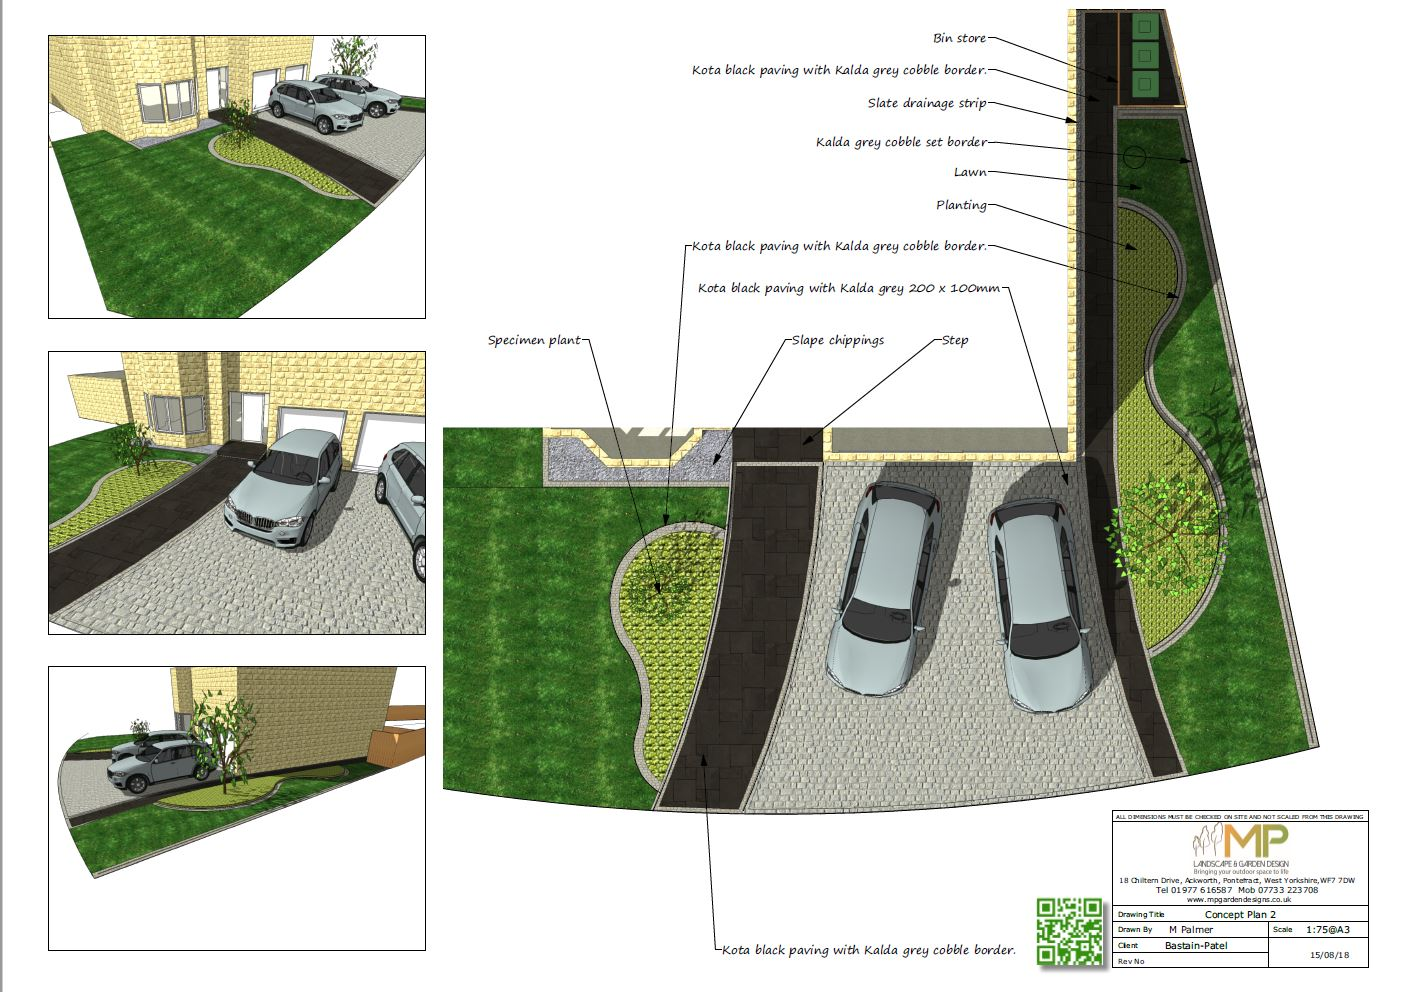 Concept plan-2 for a front garden in Ackworth, Pontefract.